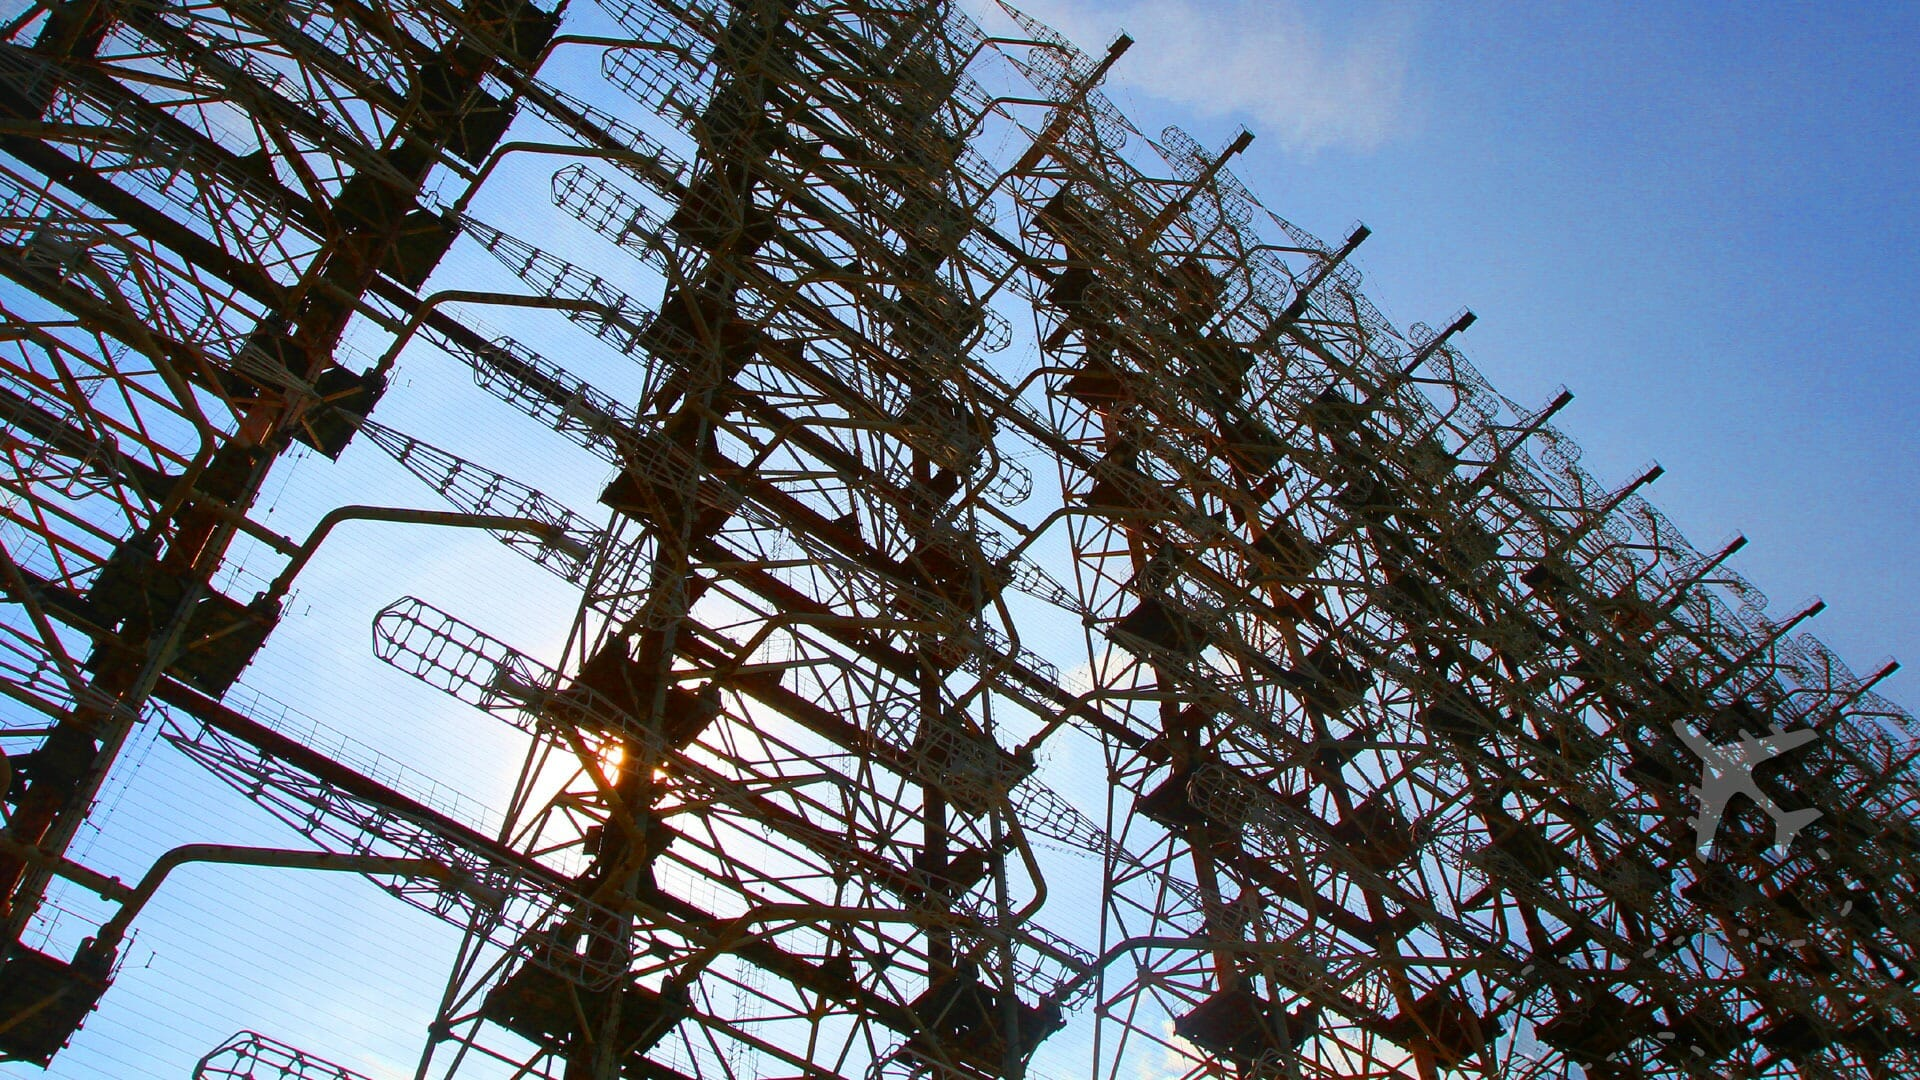 50-story tall Duga-1 radar array